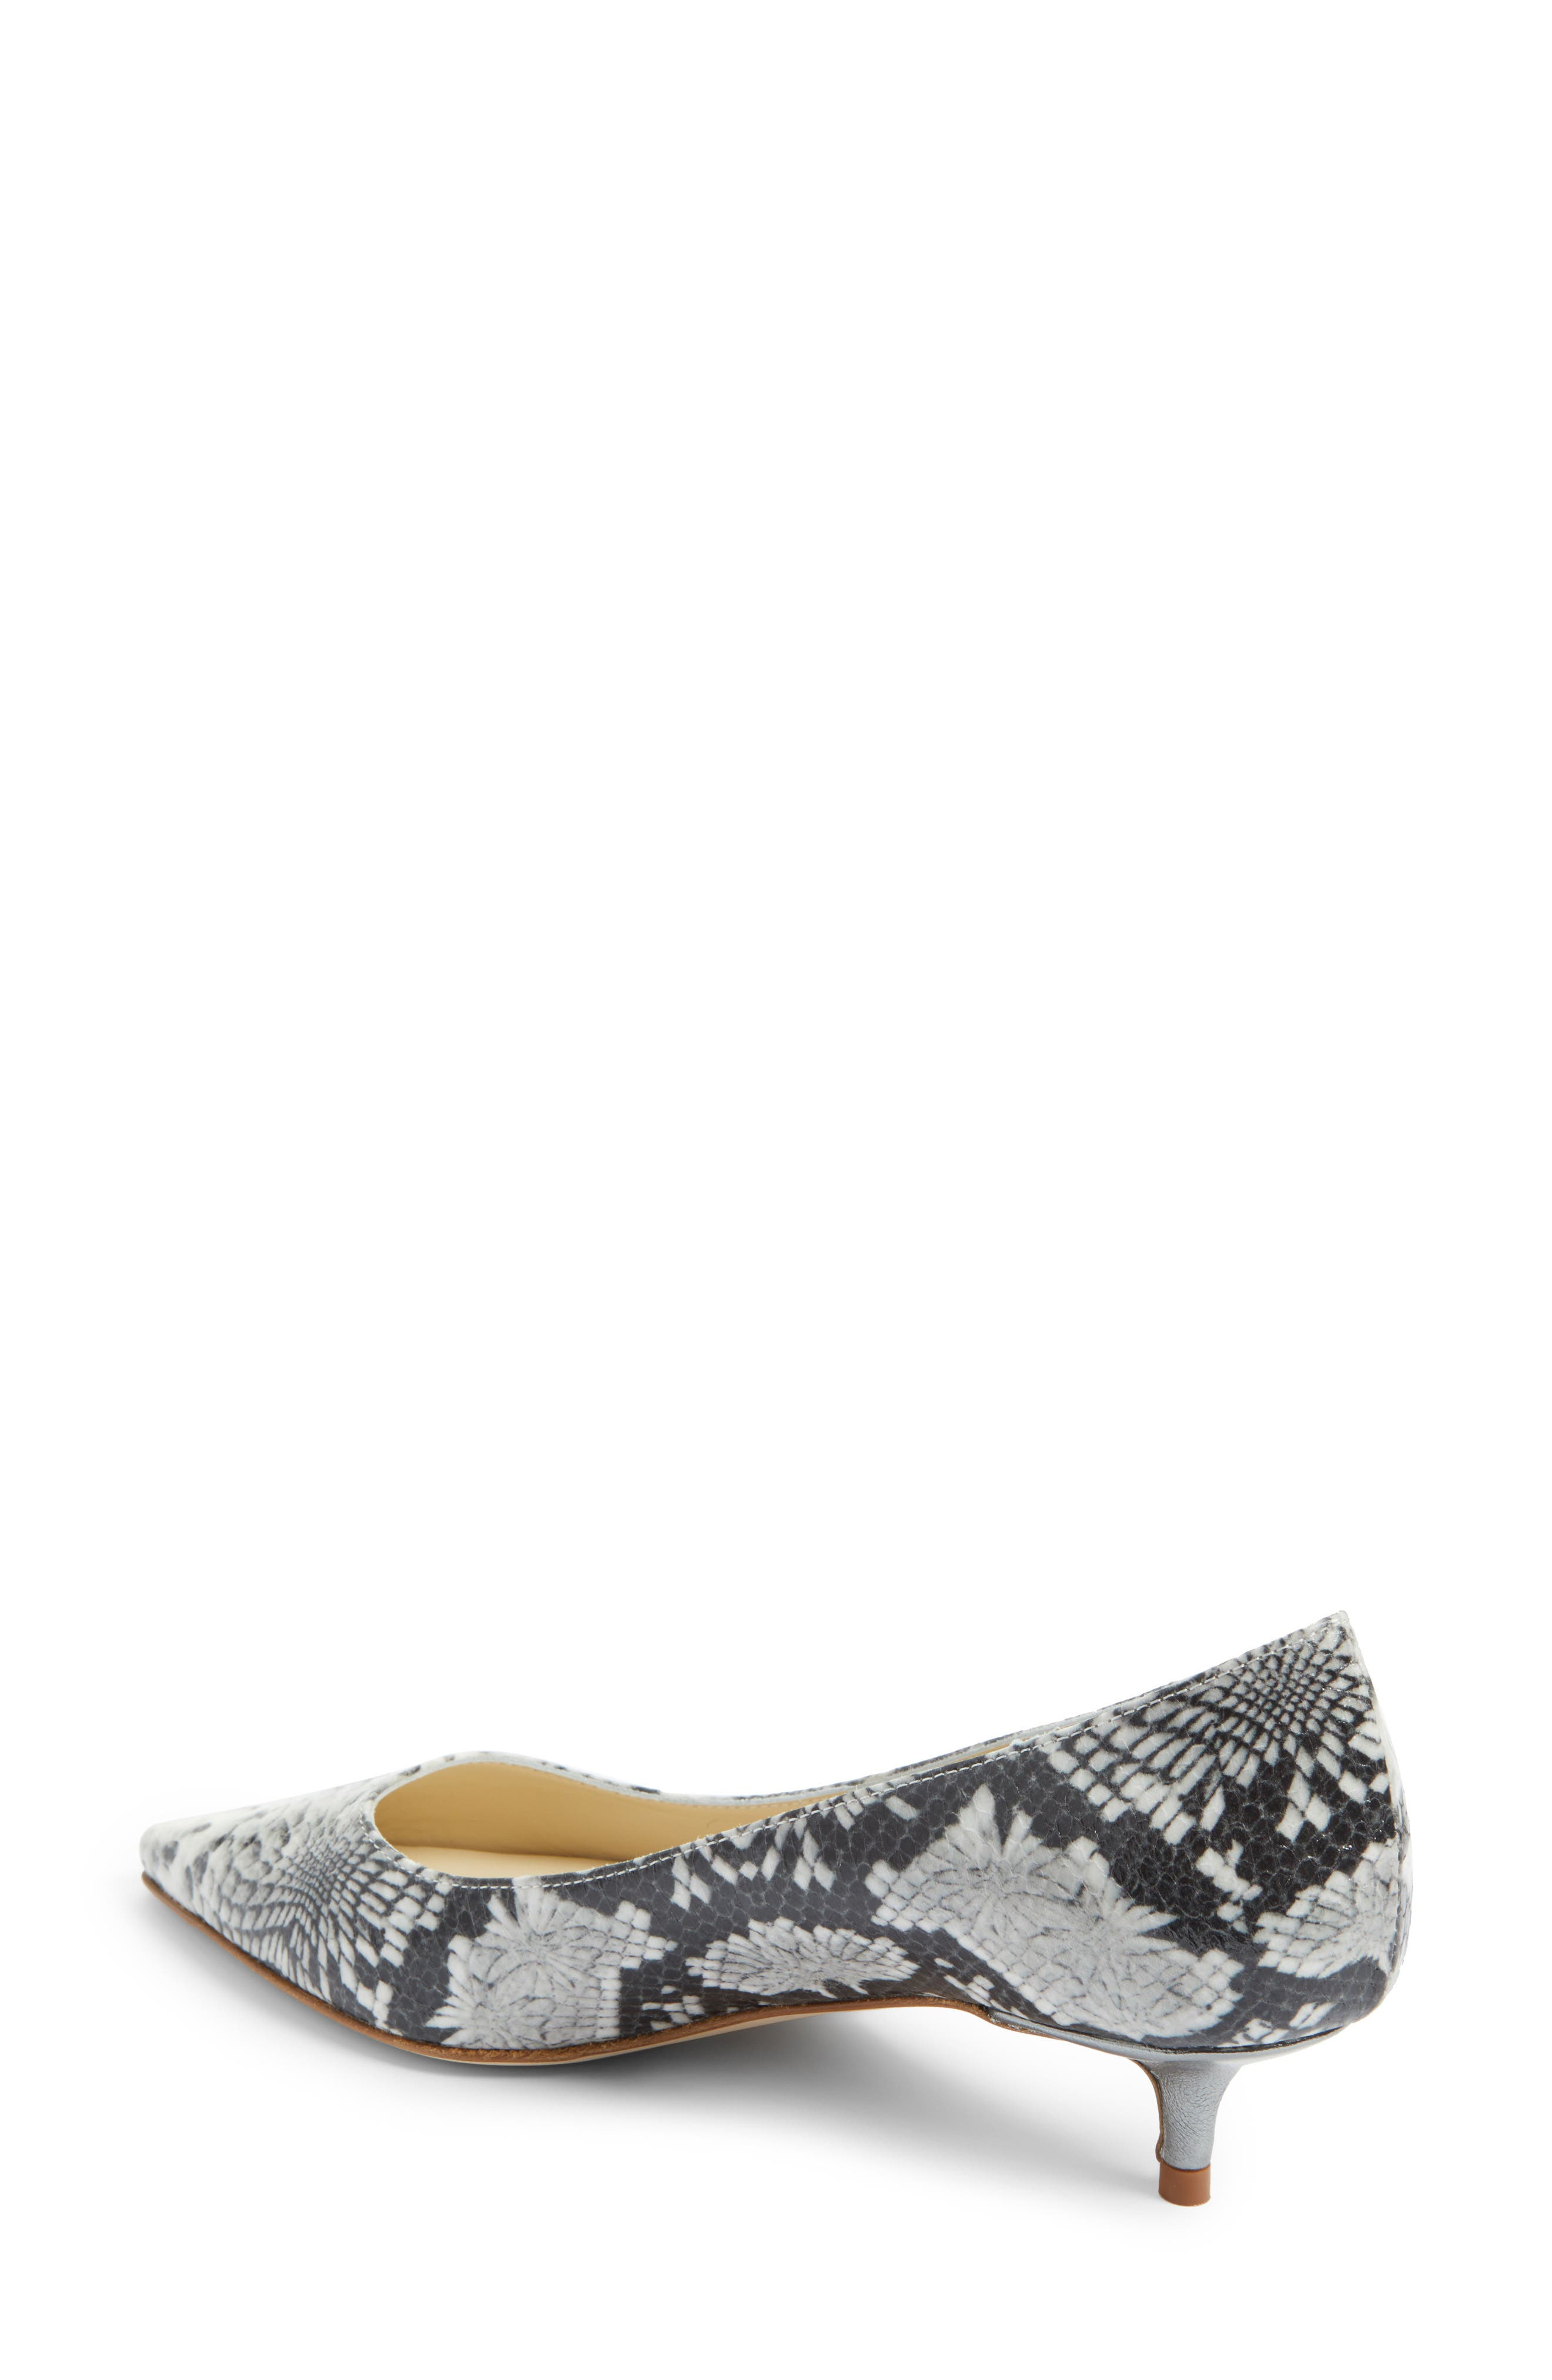 Butter Born Pointy Toe Pump,                             Alternate thumbnail 2, color,                             Black/ White Aztec